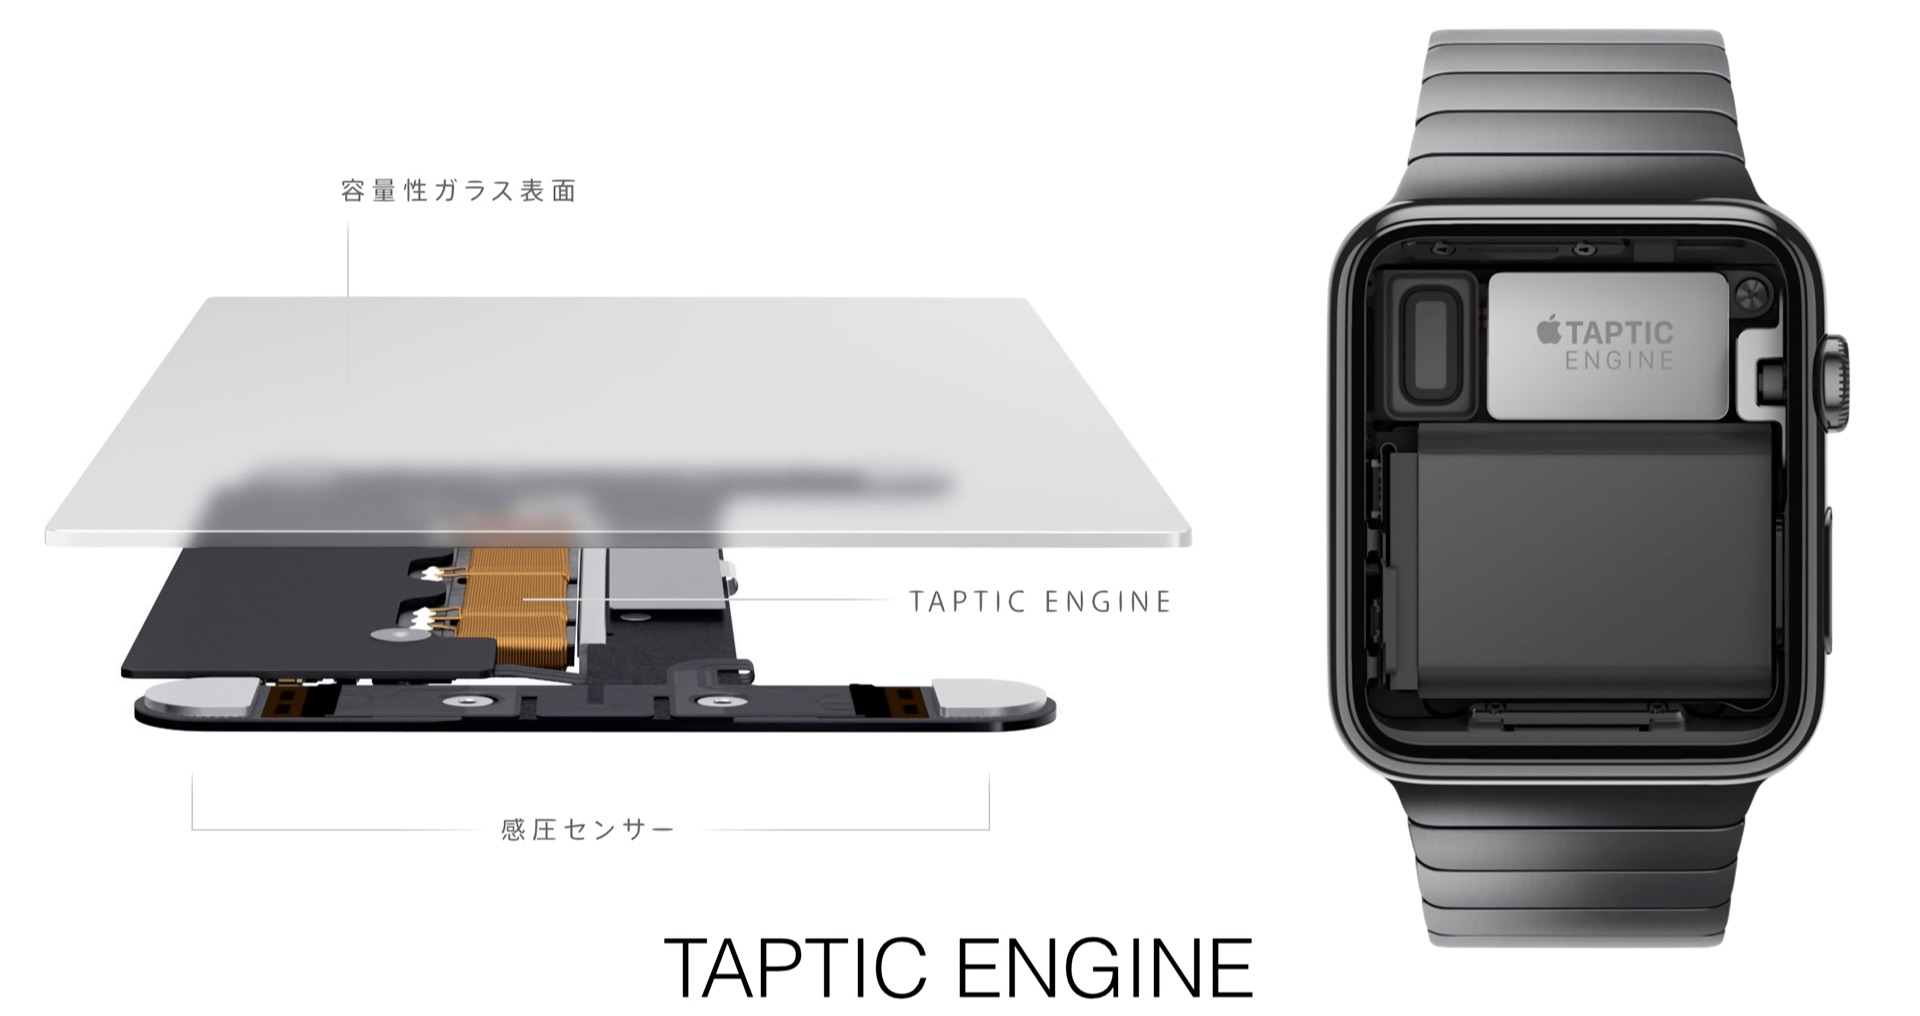 MacBook and Apple Watch Taptic Engine